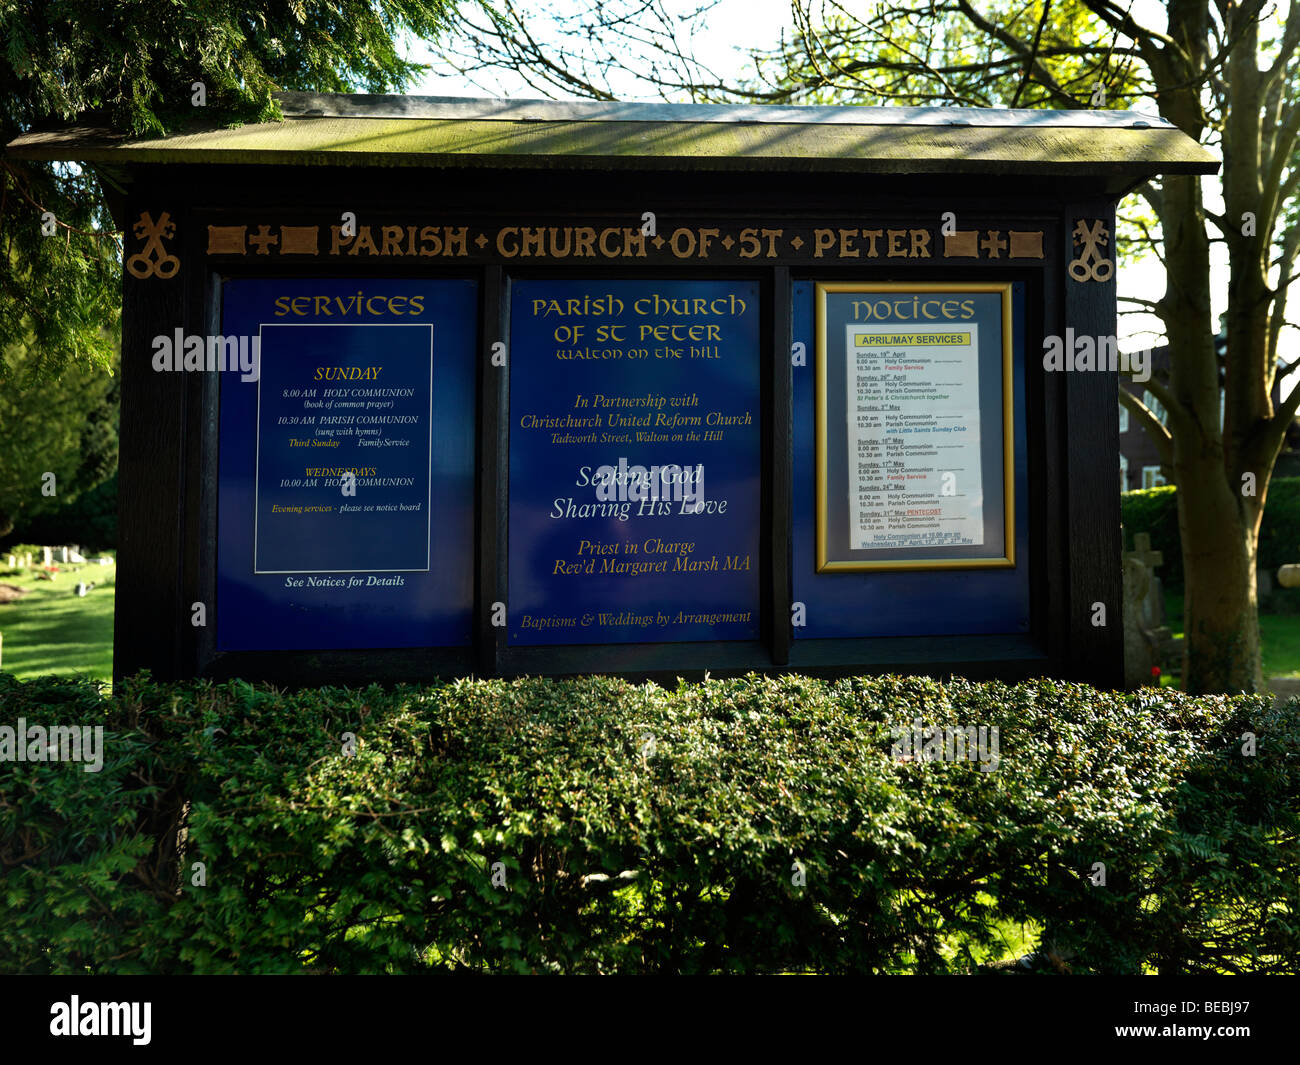 Noticeboard at the Church of St Peter Walton on the Hill Surrey England - Stock Image